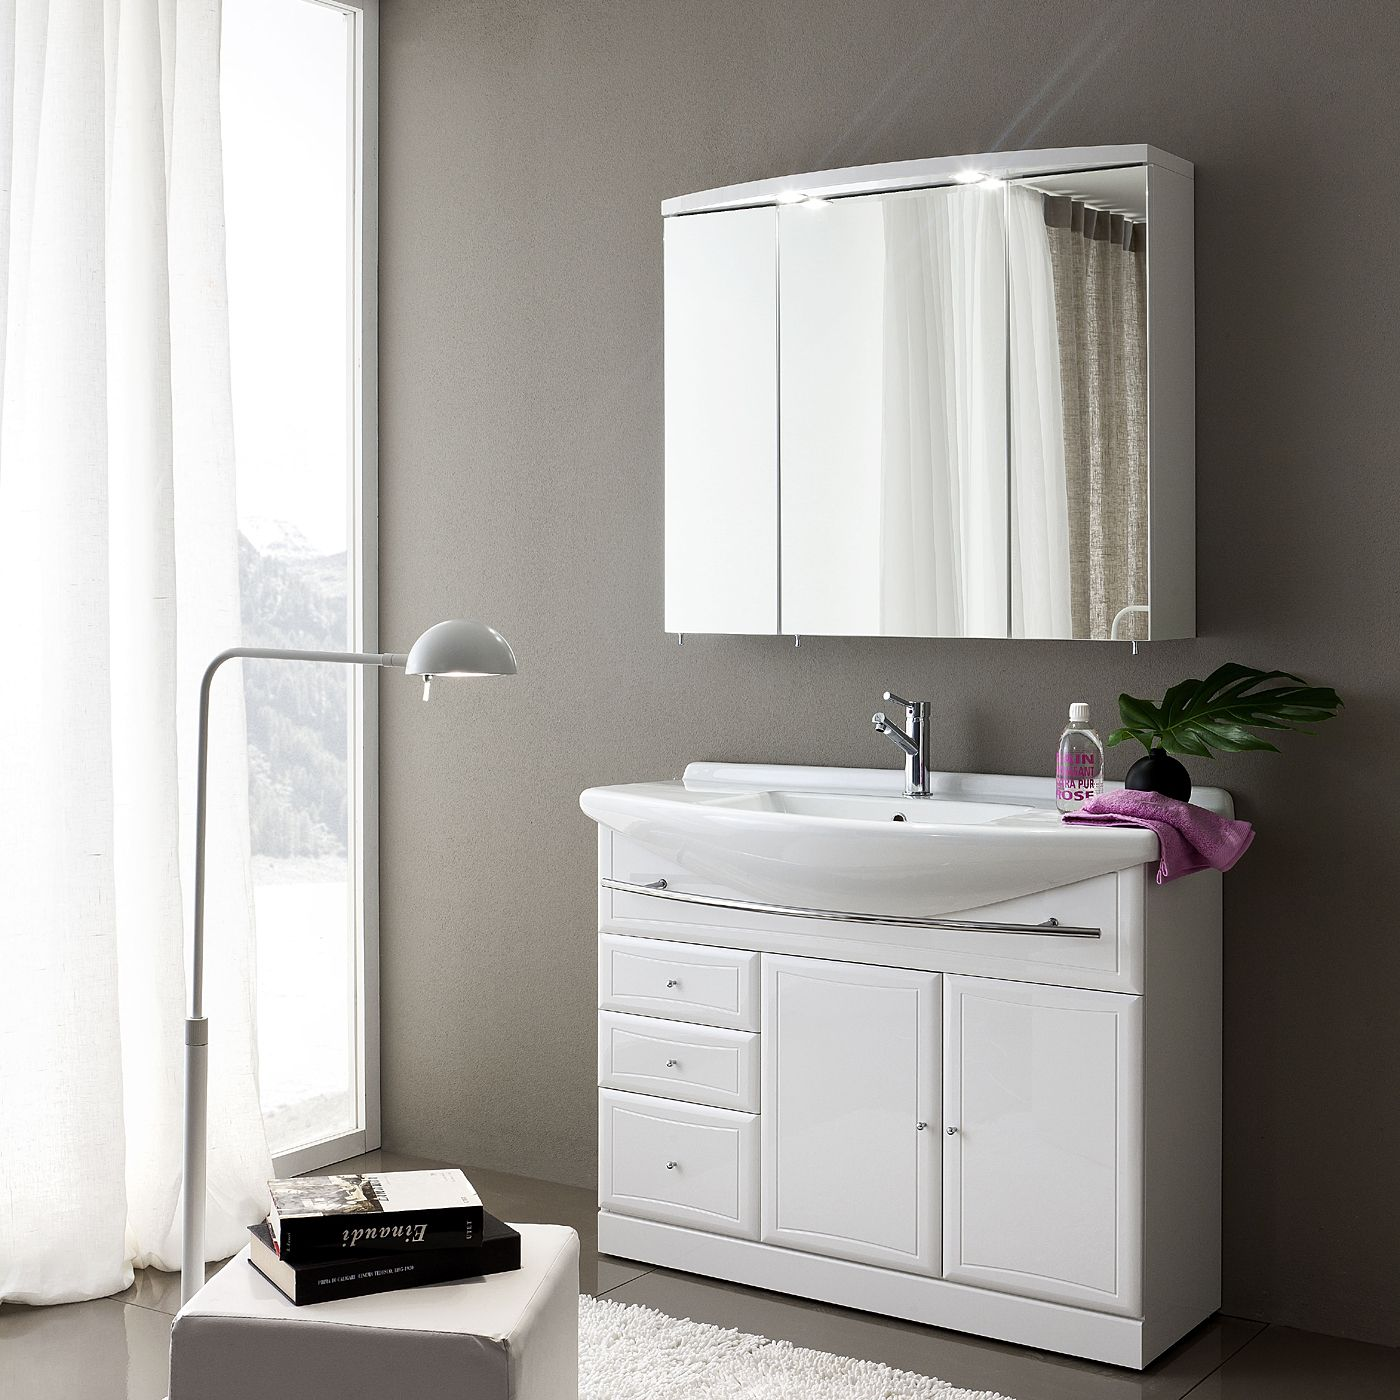 Shop Acquaviva  9SP6810 Archeda Mirror Medicine Cabinet, White at ATG Stores. Browse our medicine cabinets, all with free shipping and best price guaranteed.